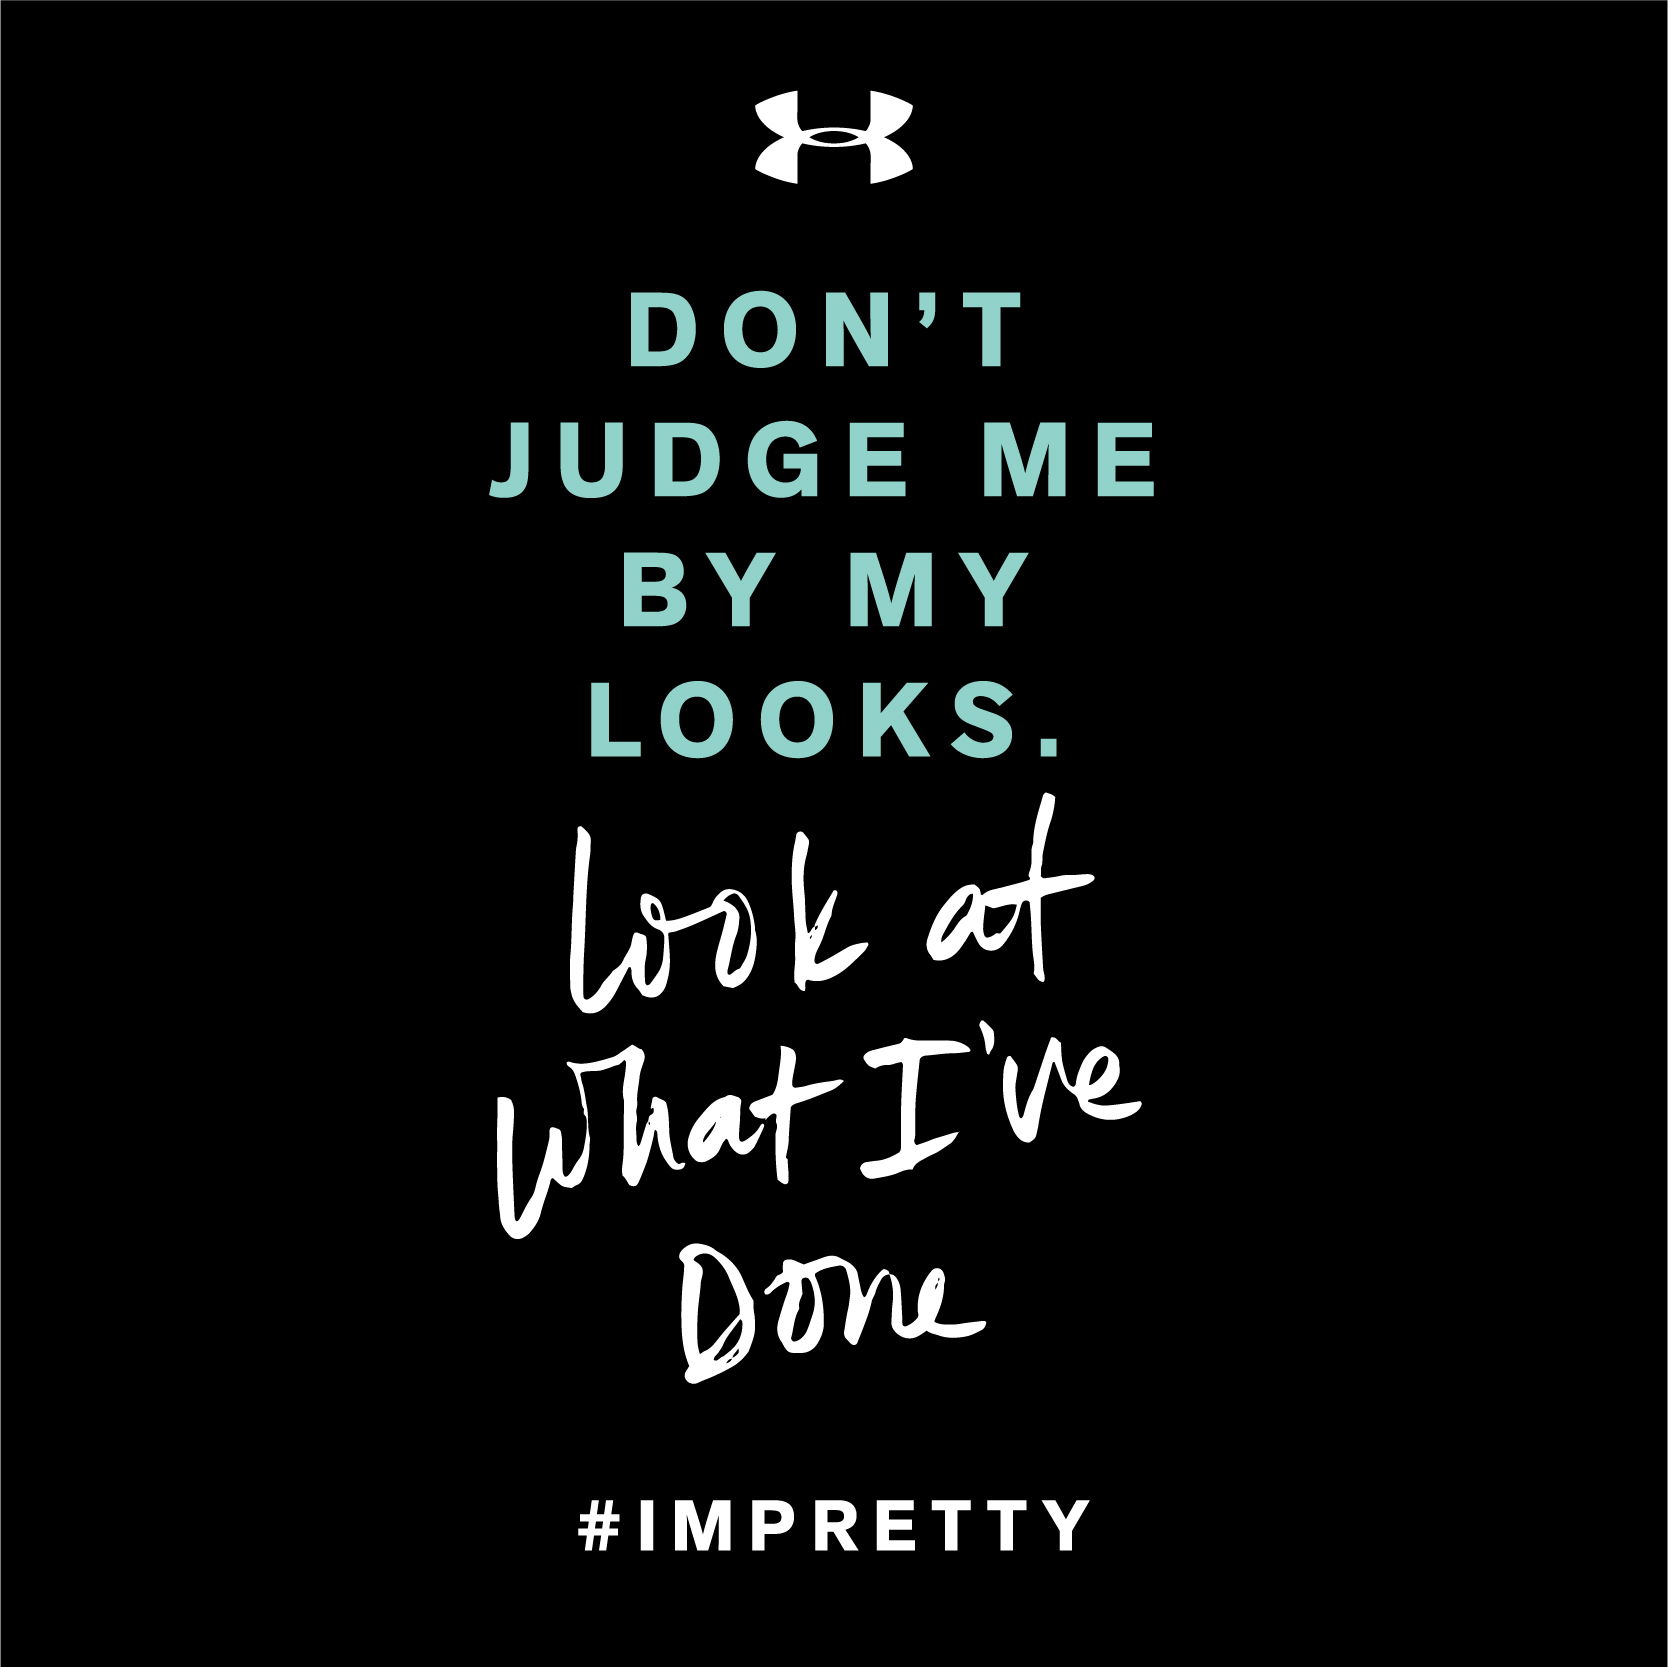 Instagram Social Graphics and Quotes_Quote - Don't Judge Me By My Looks.jpg